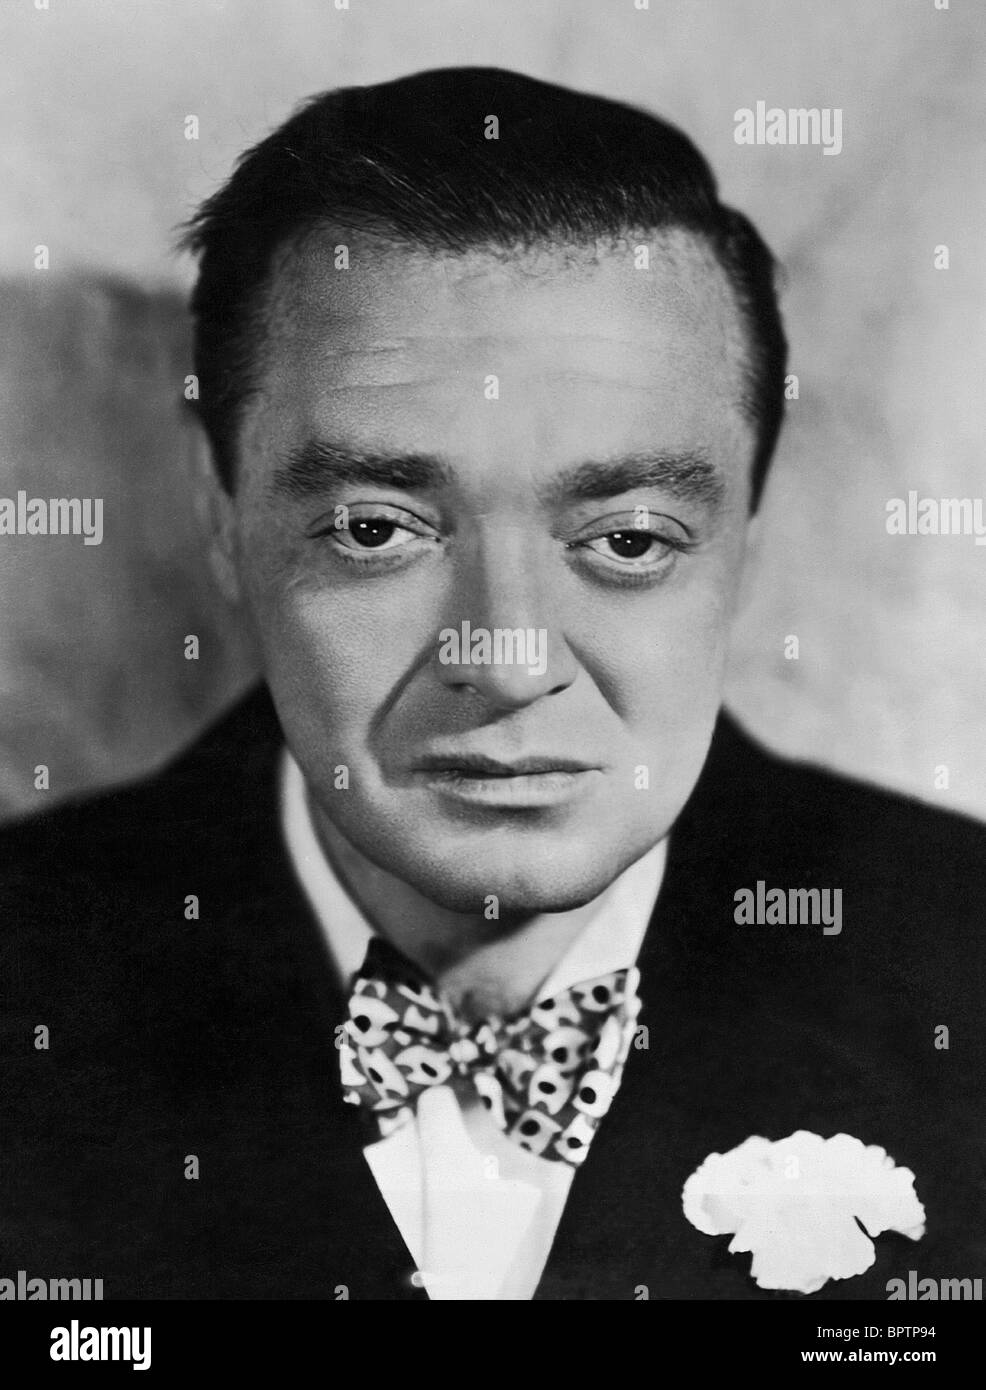 PETER LORRE ACTOR (1940) - Stock Image